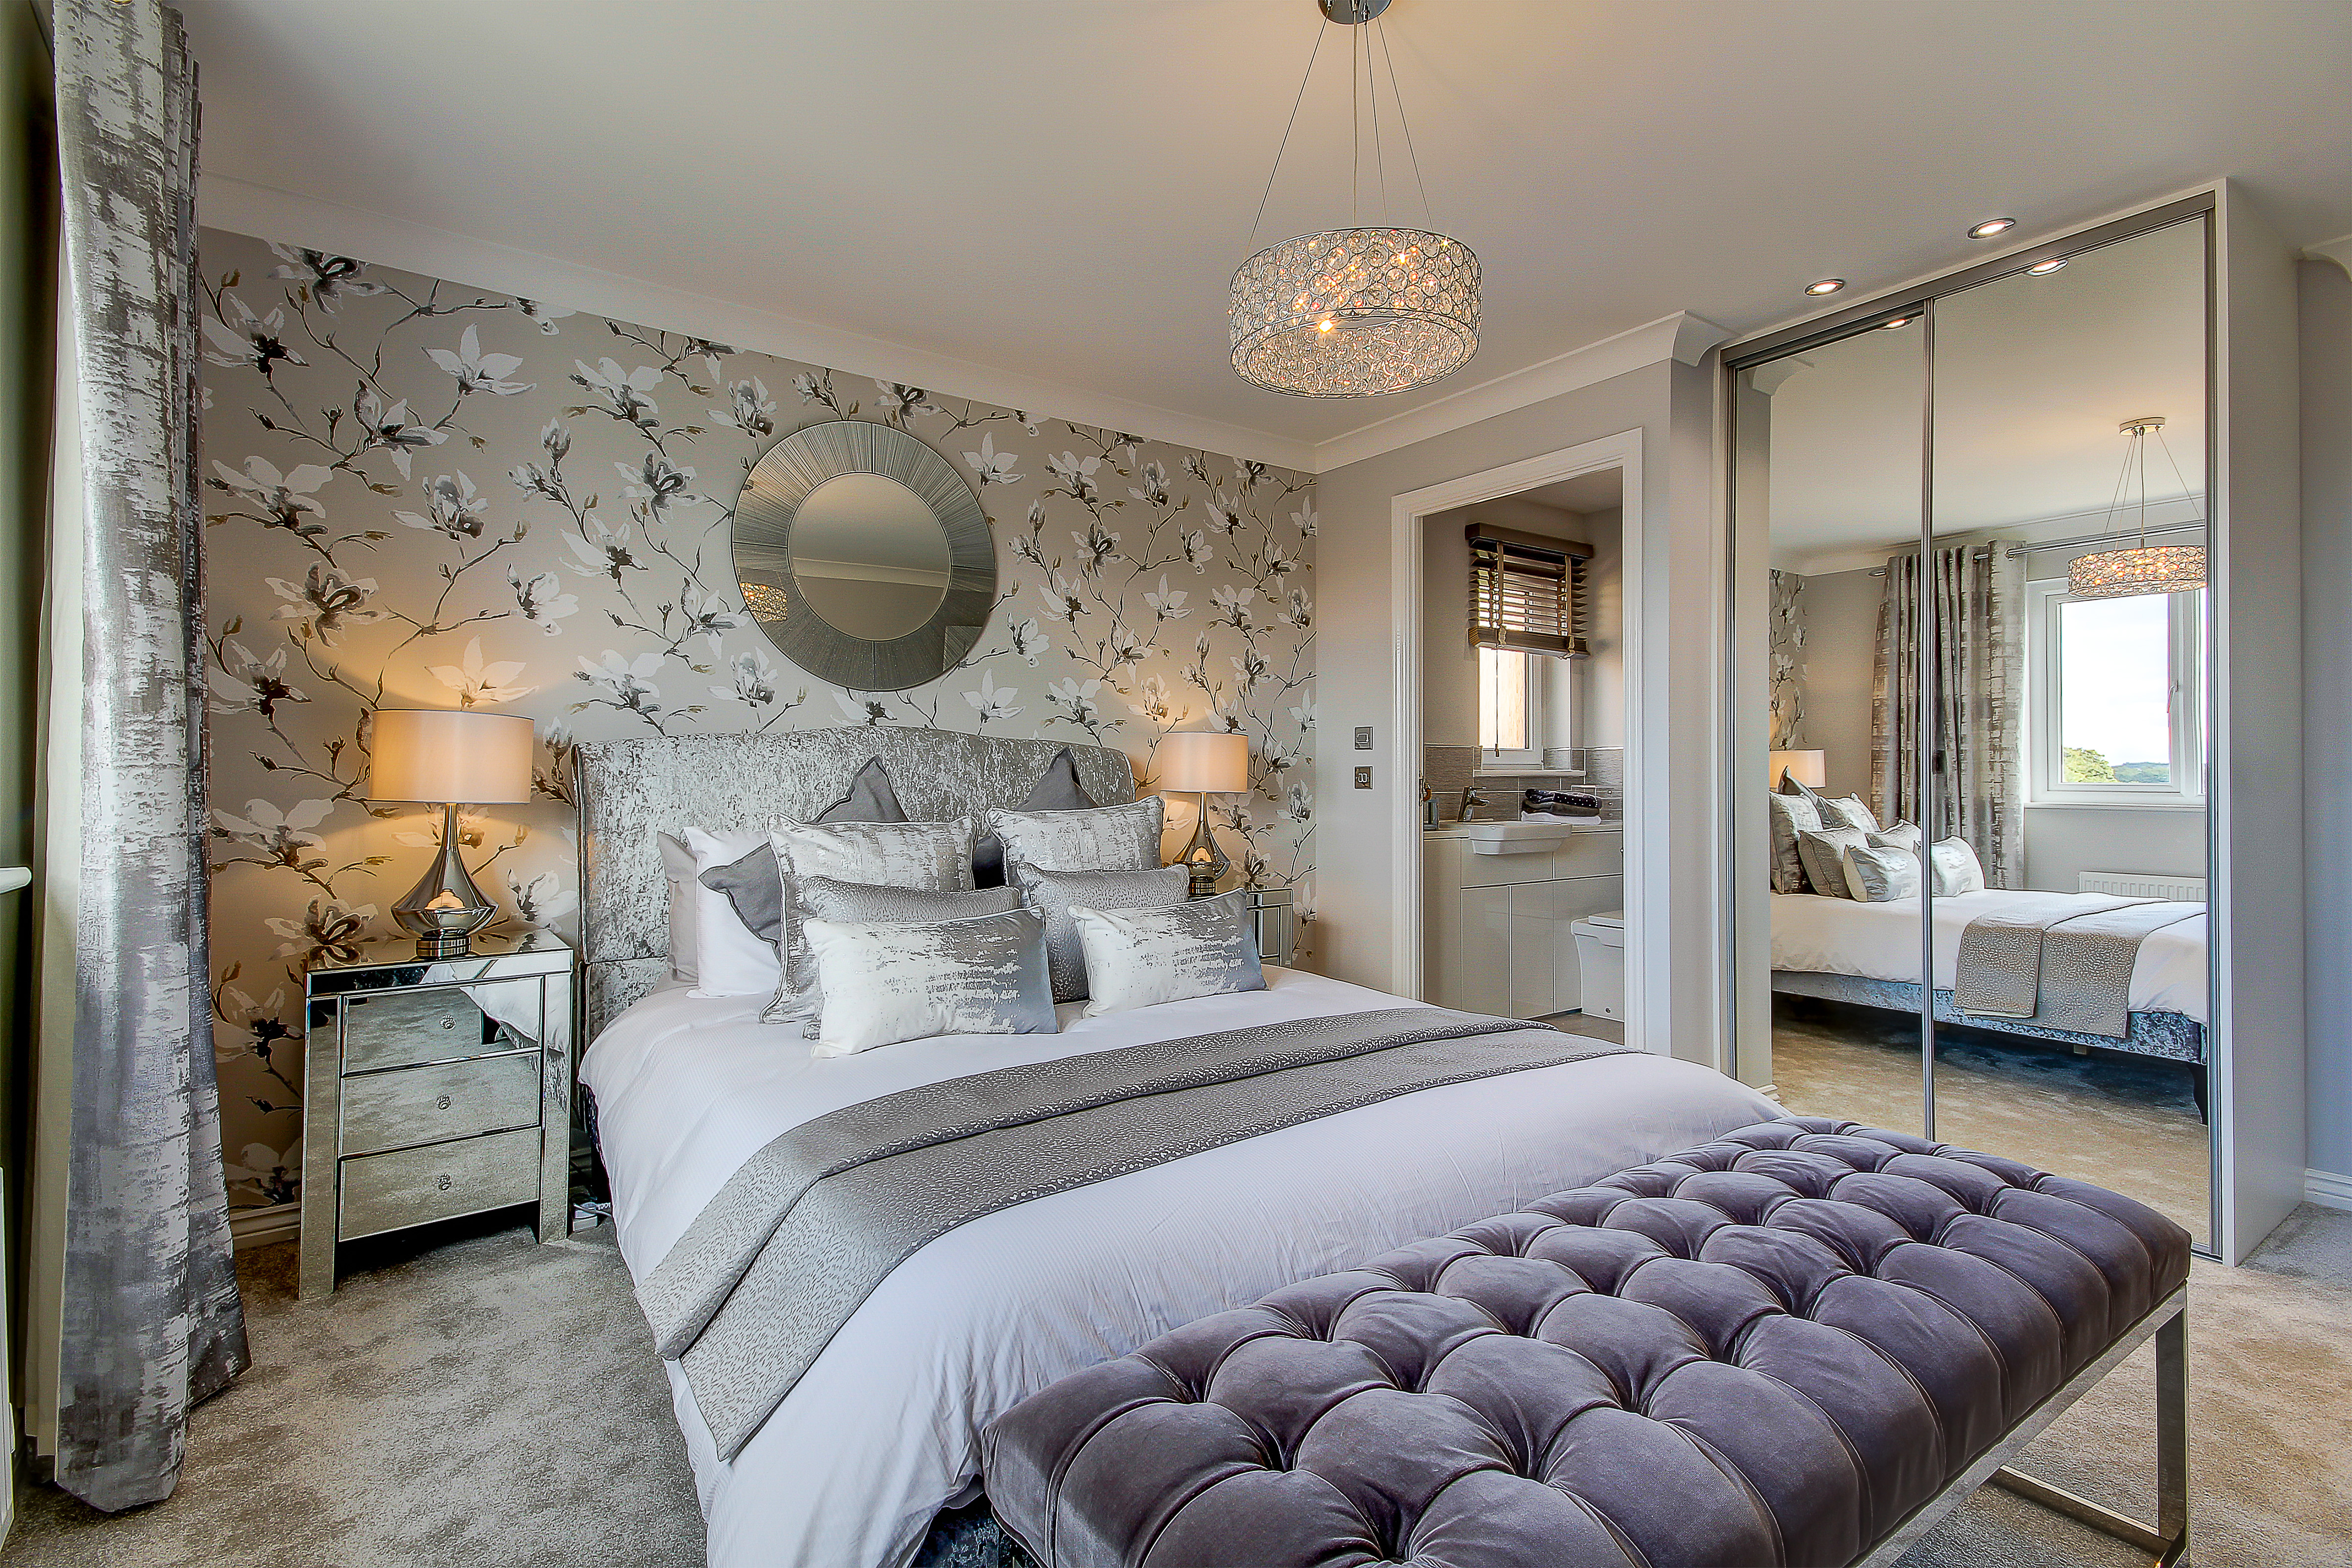 TWWS Avondale Gardens - Wallace Bedroom 2_2